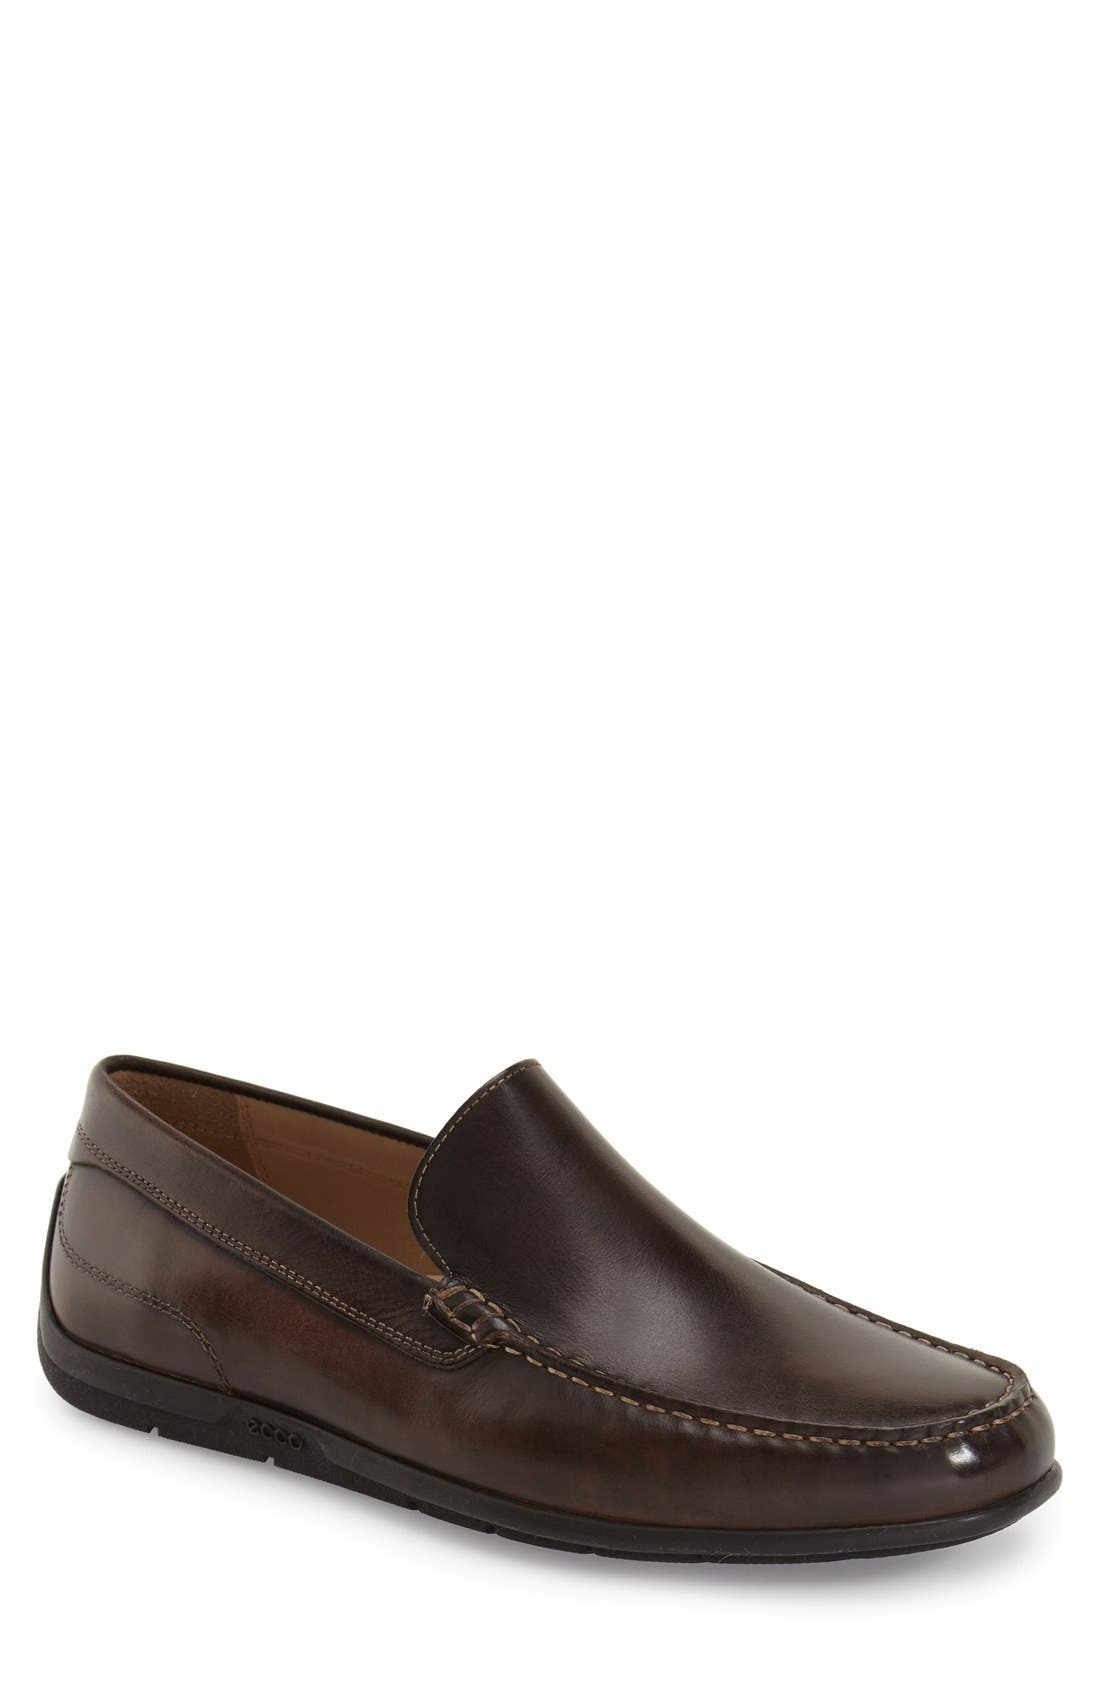 ecco mens slip on